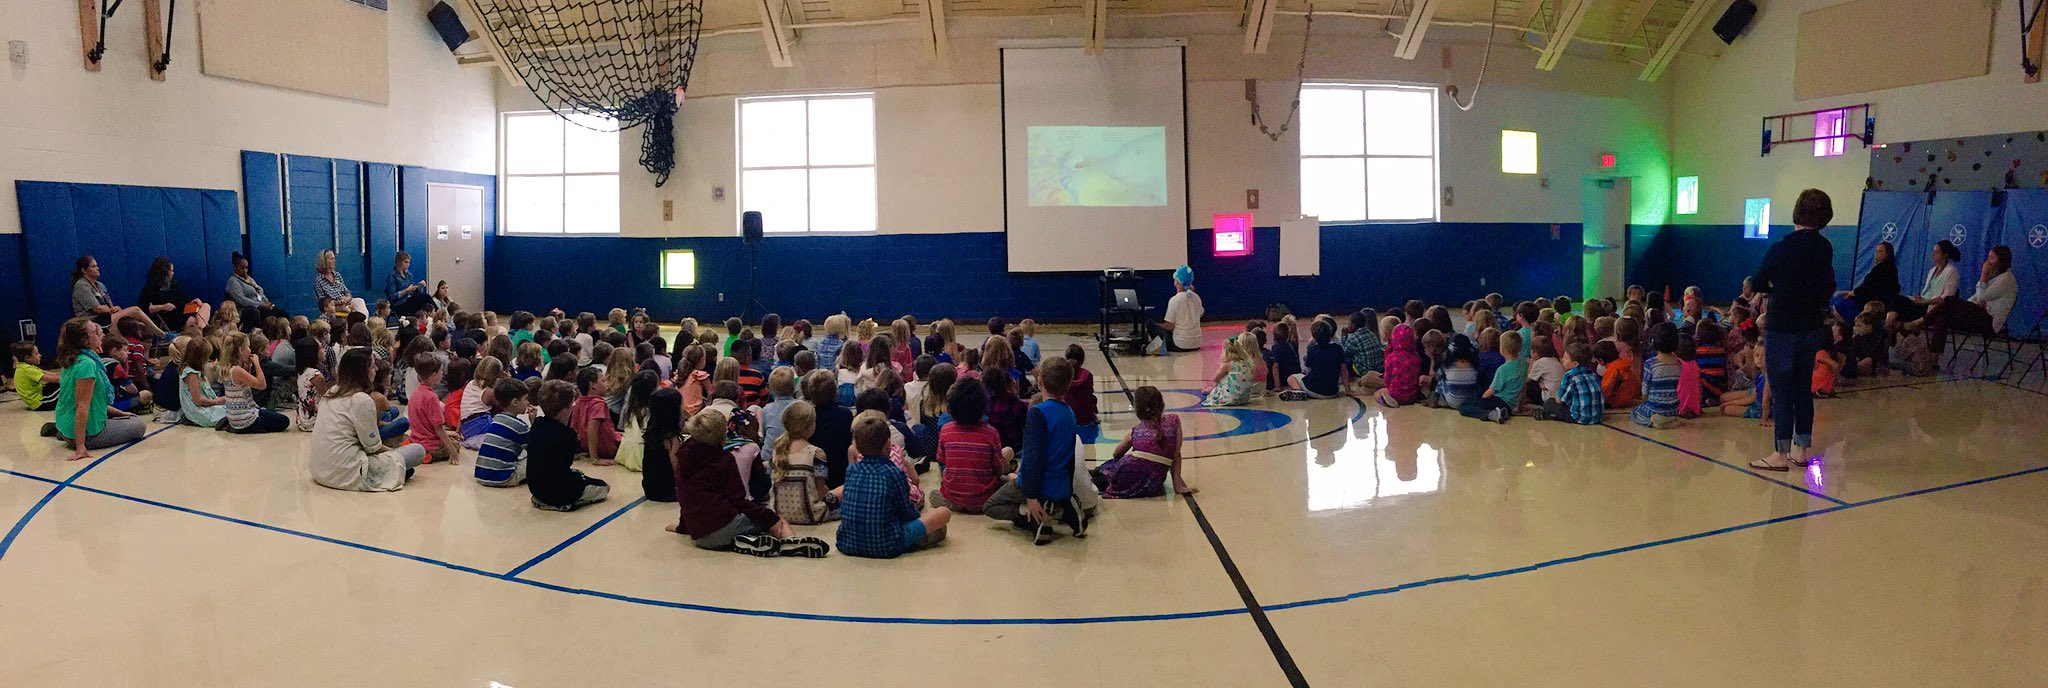 Students in K-2 listening to the author of 'Pout-Pout Fish', Dan Hanna. Thanks for visiting our #bristolbulldogs! #wgbuzz https://t.co/74rGqO8LLQ